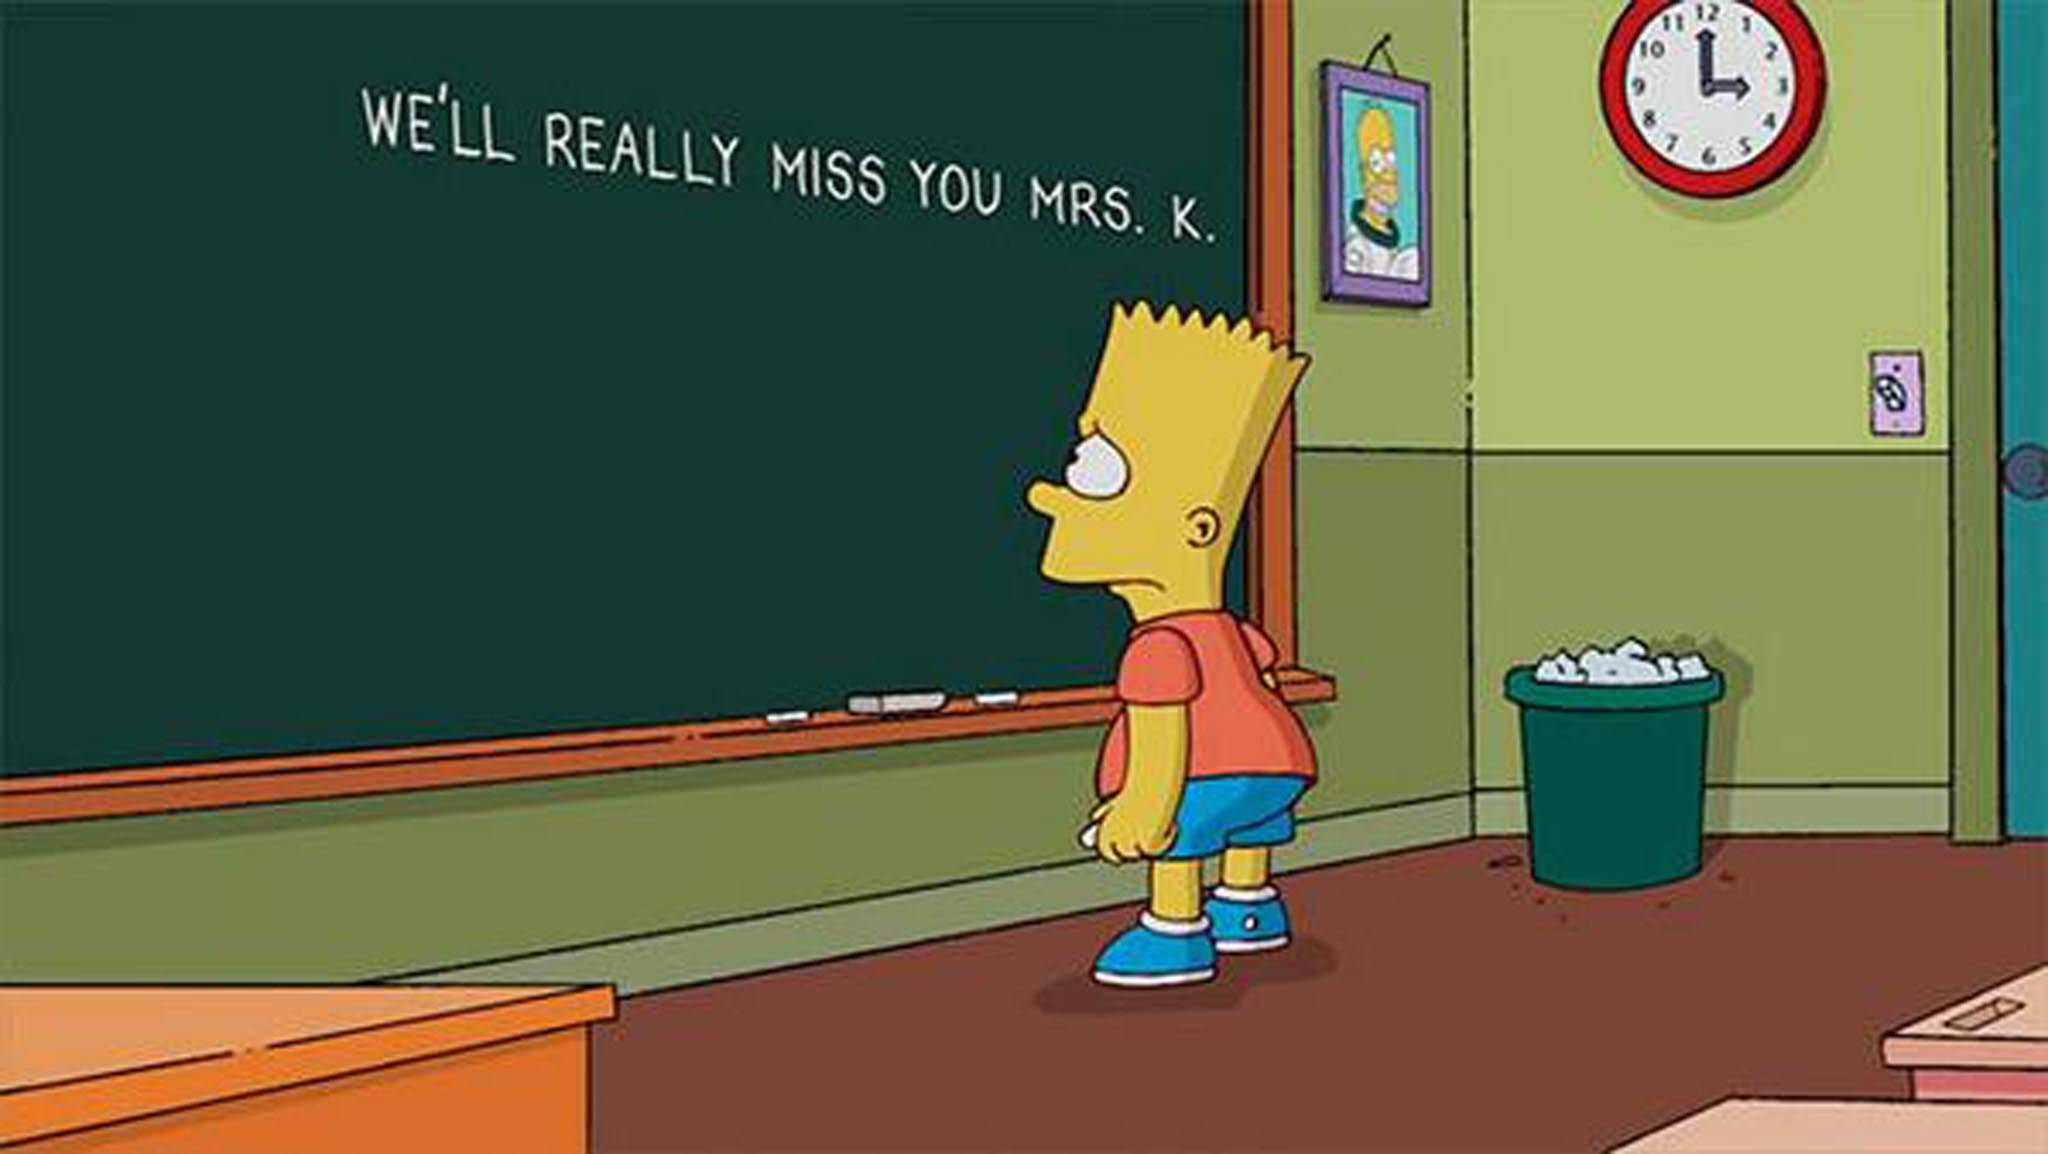 The cultural significance and the messages of the simpsons